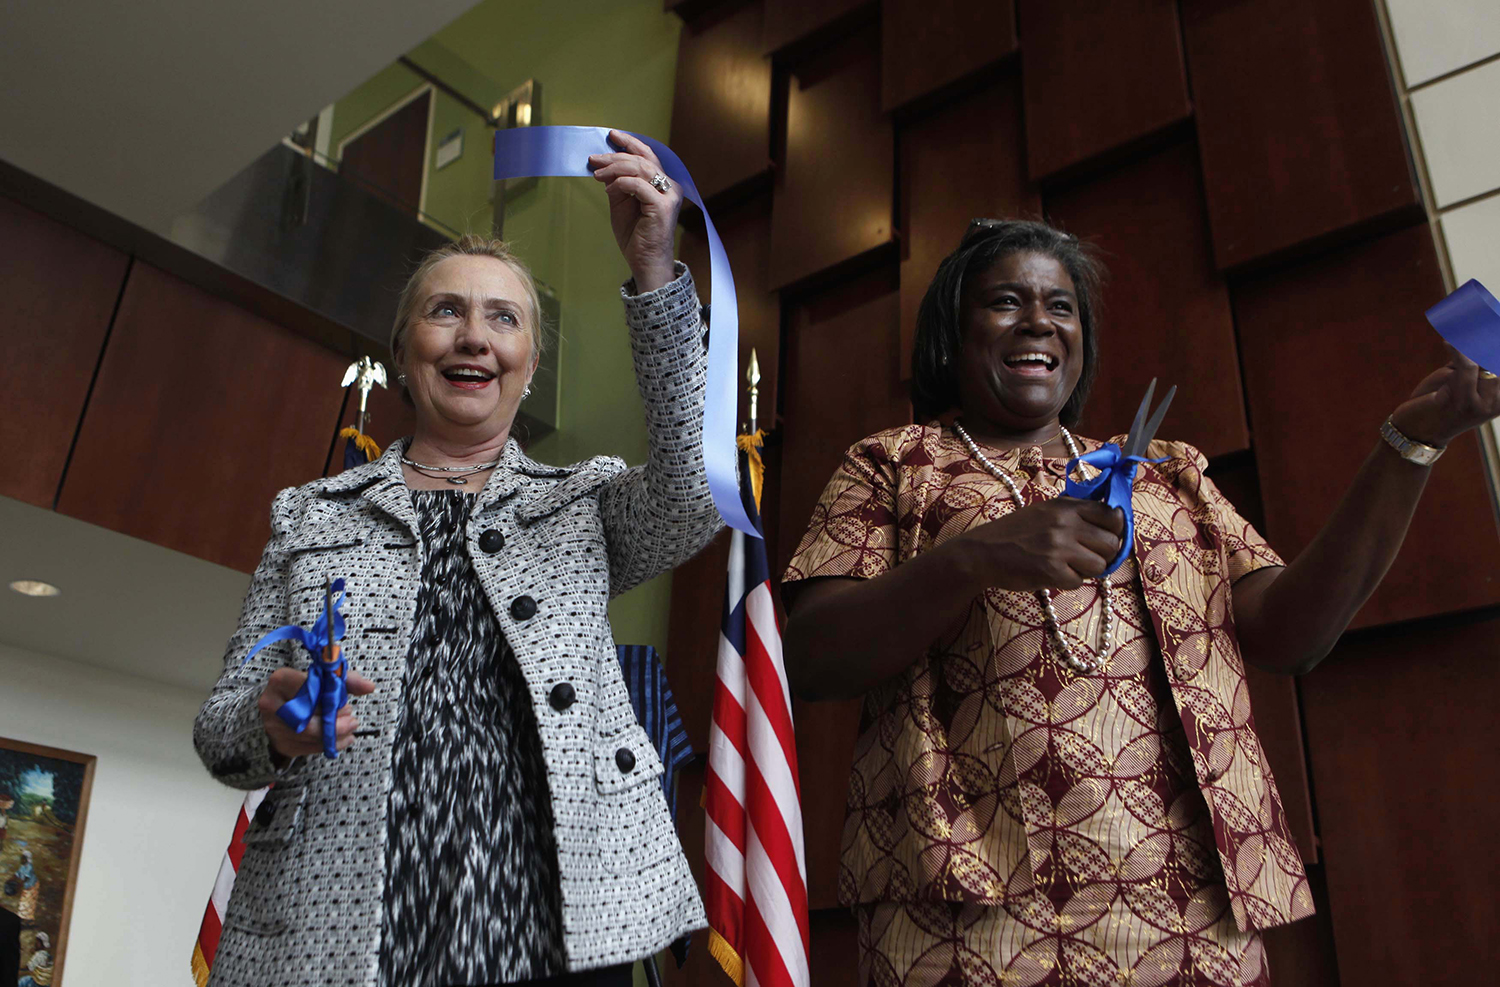 U.S. Secretary of State Hillary Clinton with Thomas-Greenfield at the new U.S. Embassy in Monrovia, Liberia, on Jan. 16, 2012.